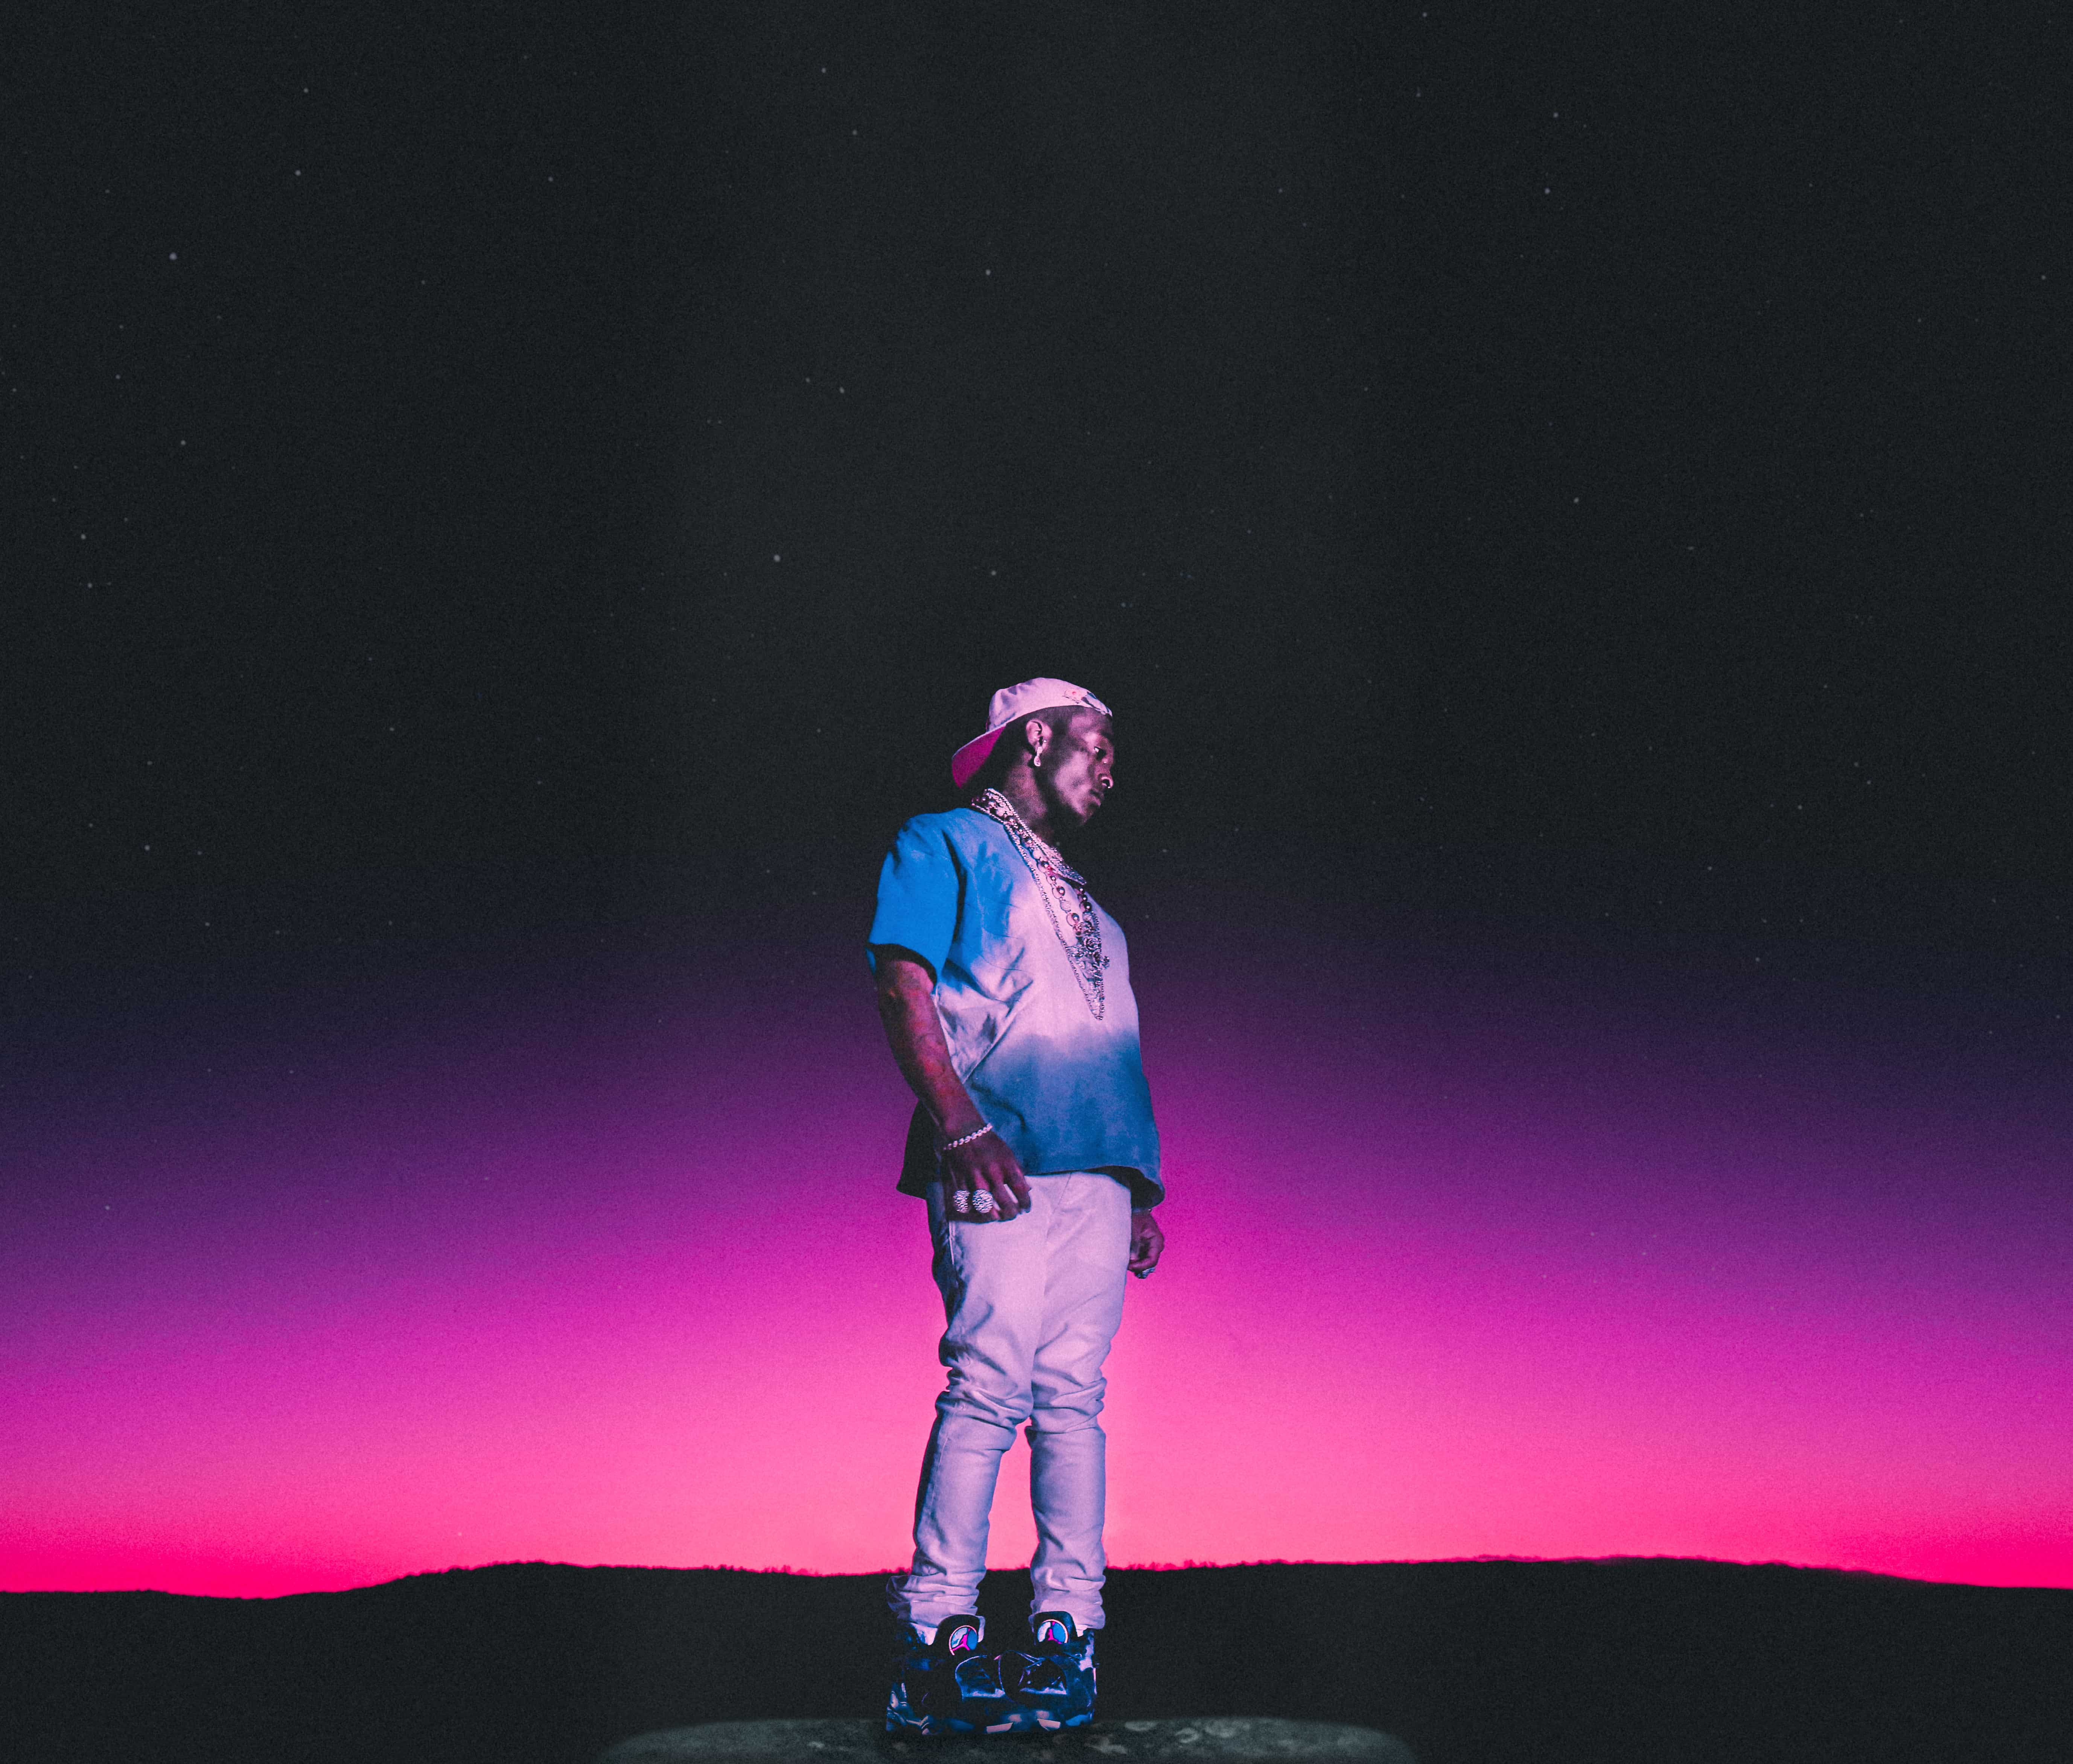 Lil Uzi Vert 5k Hd Music 4k Wallpapers Images Backgrounds Photos And Pictures Lil uzi vert s hd with a maximum resolution of 2560x1440 and related vert or wallpapers wallpapers. hdqwalls com